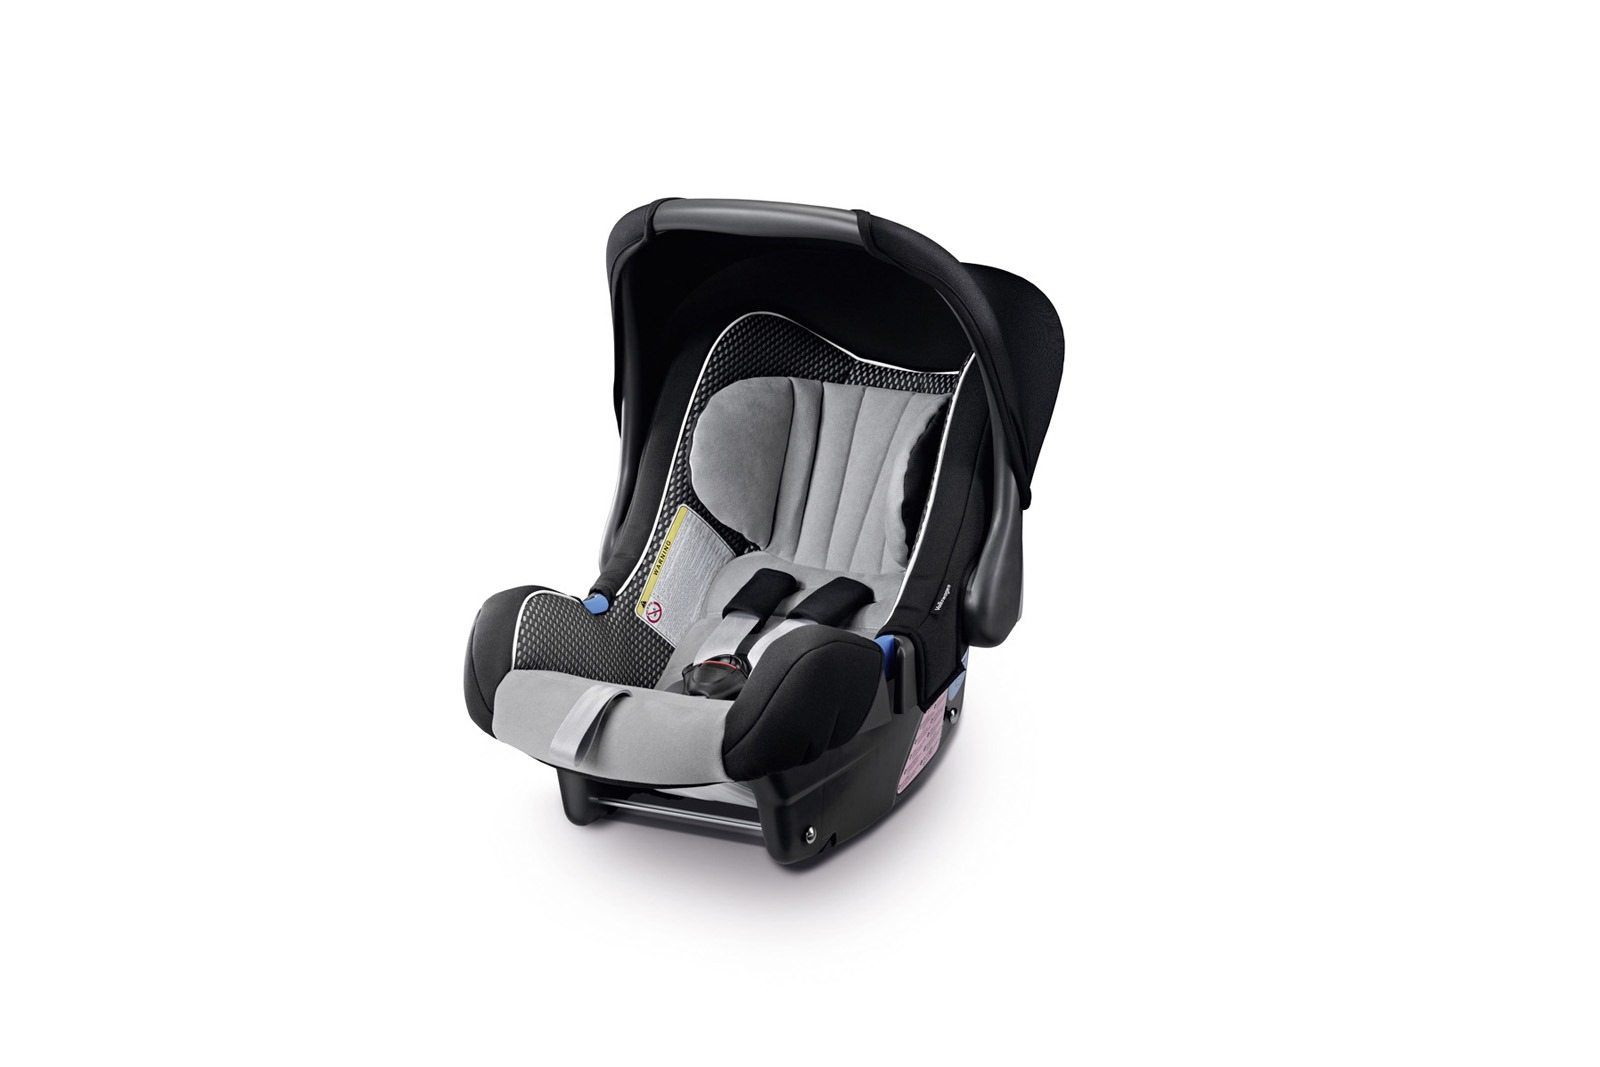 VW Polo facelift accessories - G0 Isofix child seat